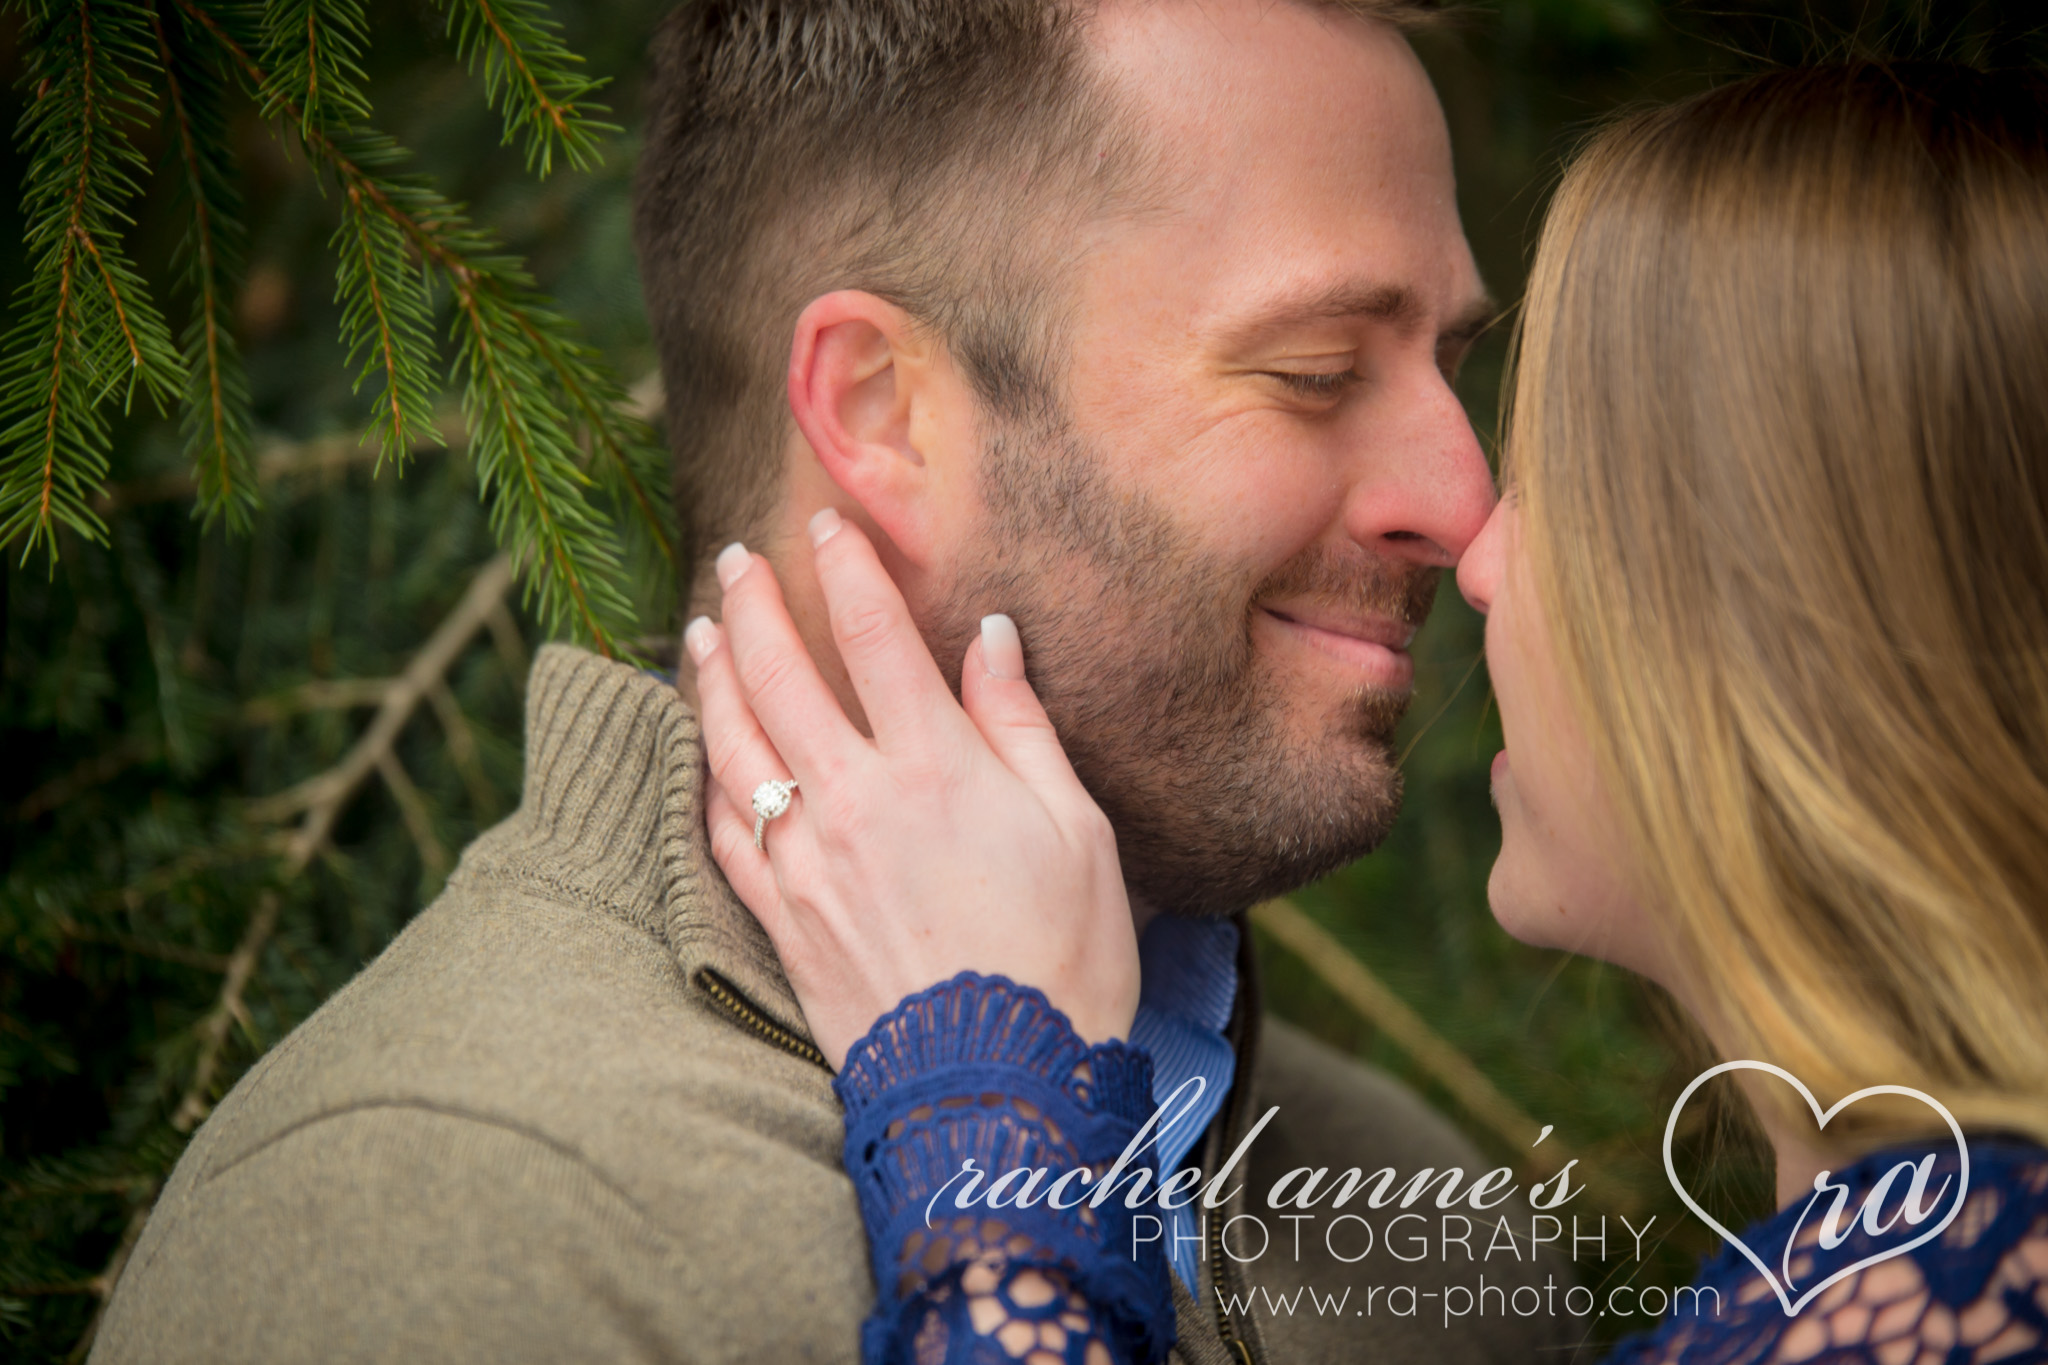 074-JKM-DUBOIS-PA-ENGAGEMENT-PHOTOGRAPHY.jpg